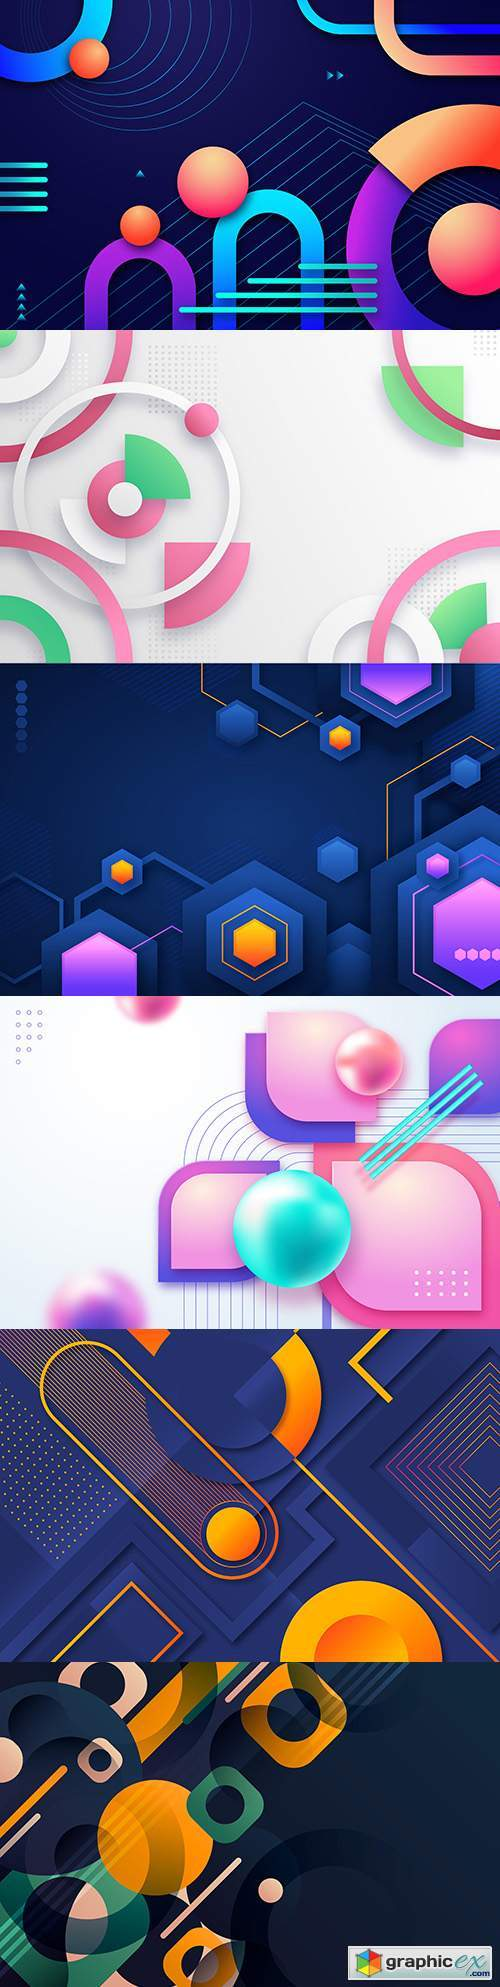 Gradient abstract design geometric background shape 4